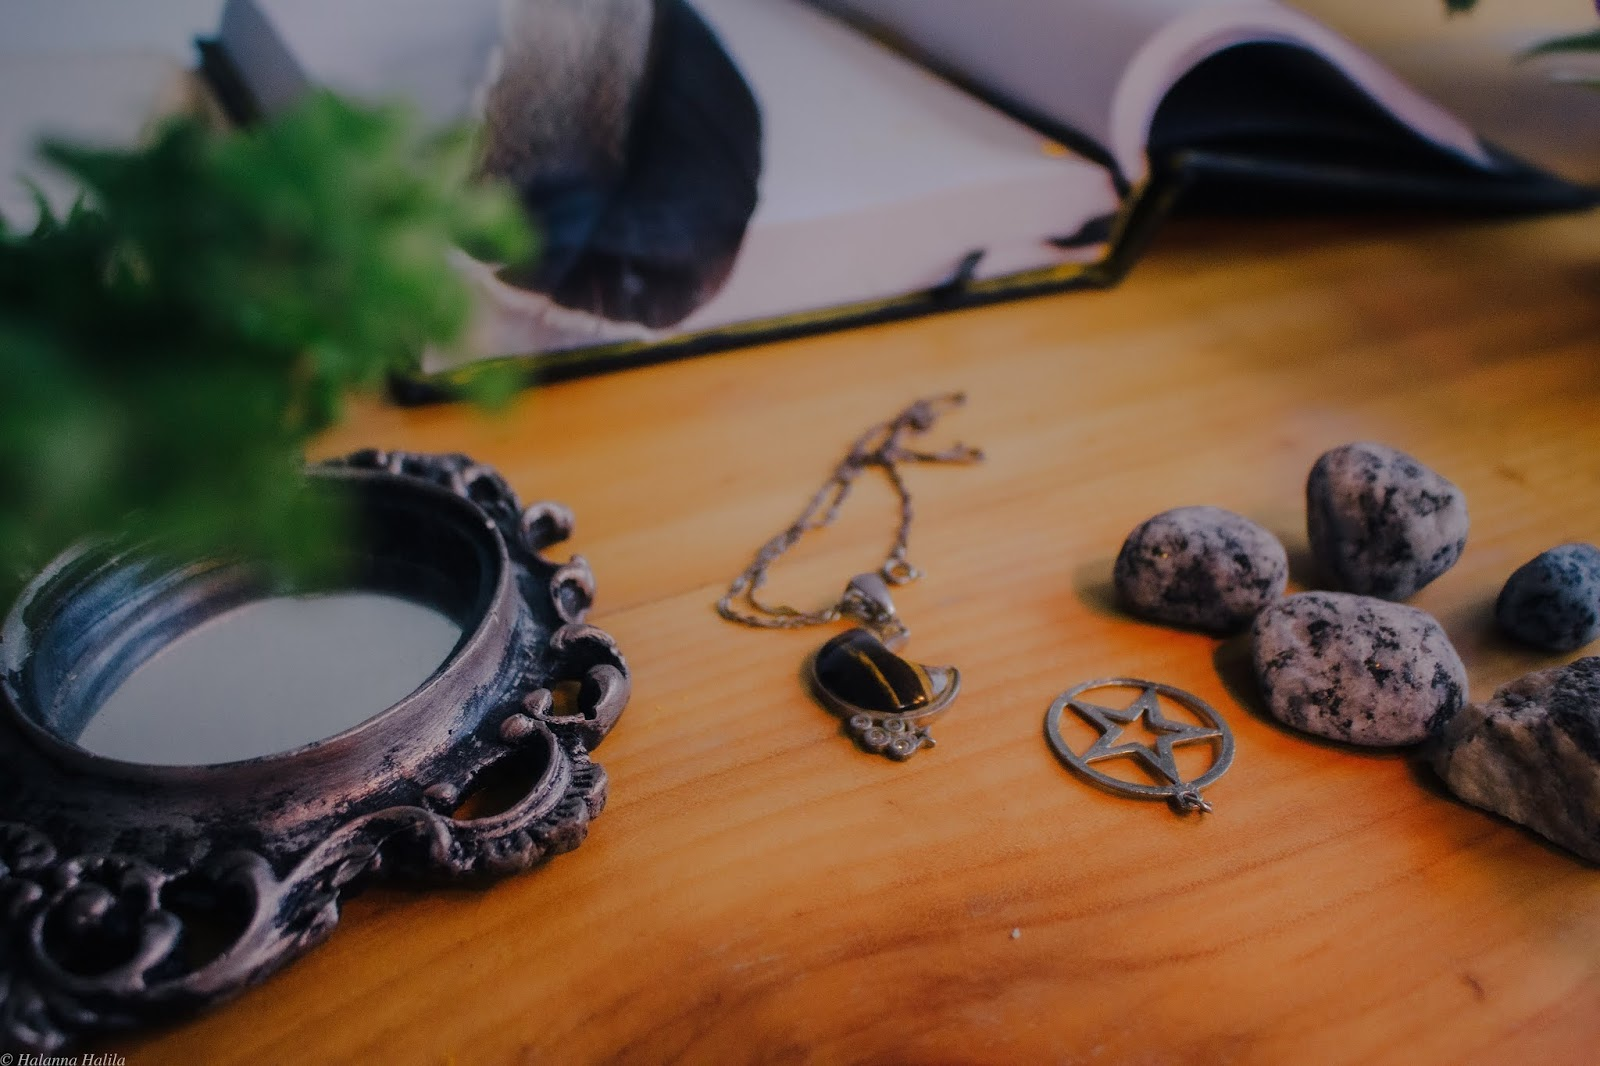 A photo of a light wooden table on which are some rocks, a pentacle pendant, a necklace with a jewelled crescent moon pendant, a vintage hand-held mirror, an open book with a feather on top, and a green plant